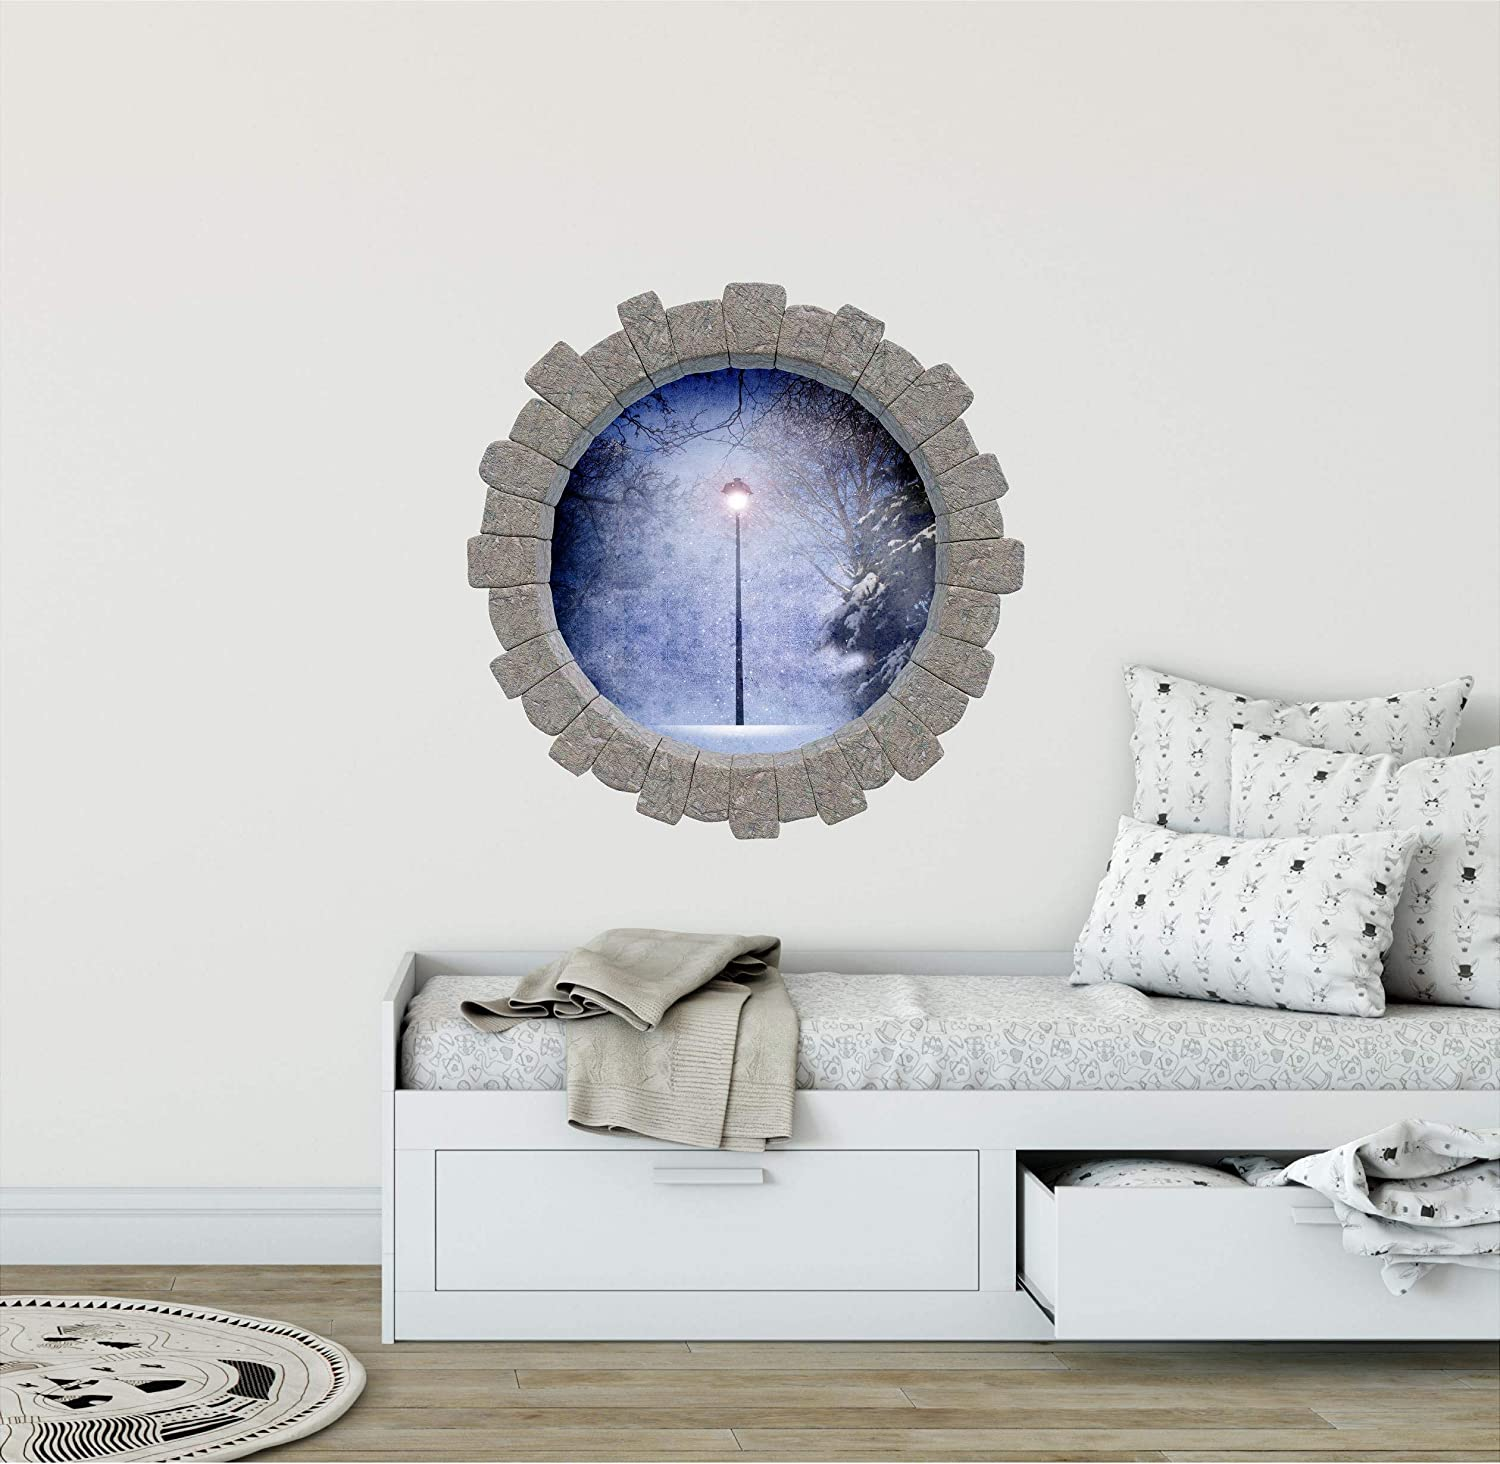 3D Stone Hole Wall Decal Narnia Lamp Post Fantasy Adventure Fairy Tale Brick 3D Window Removable Fabric Vinyl Wall Sticker